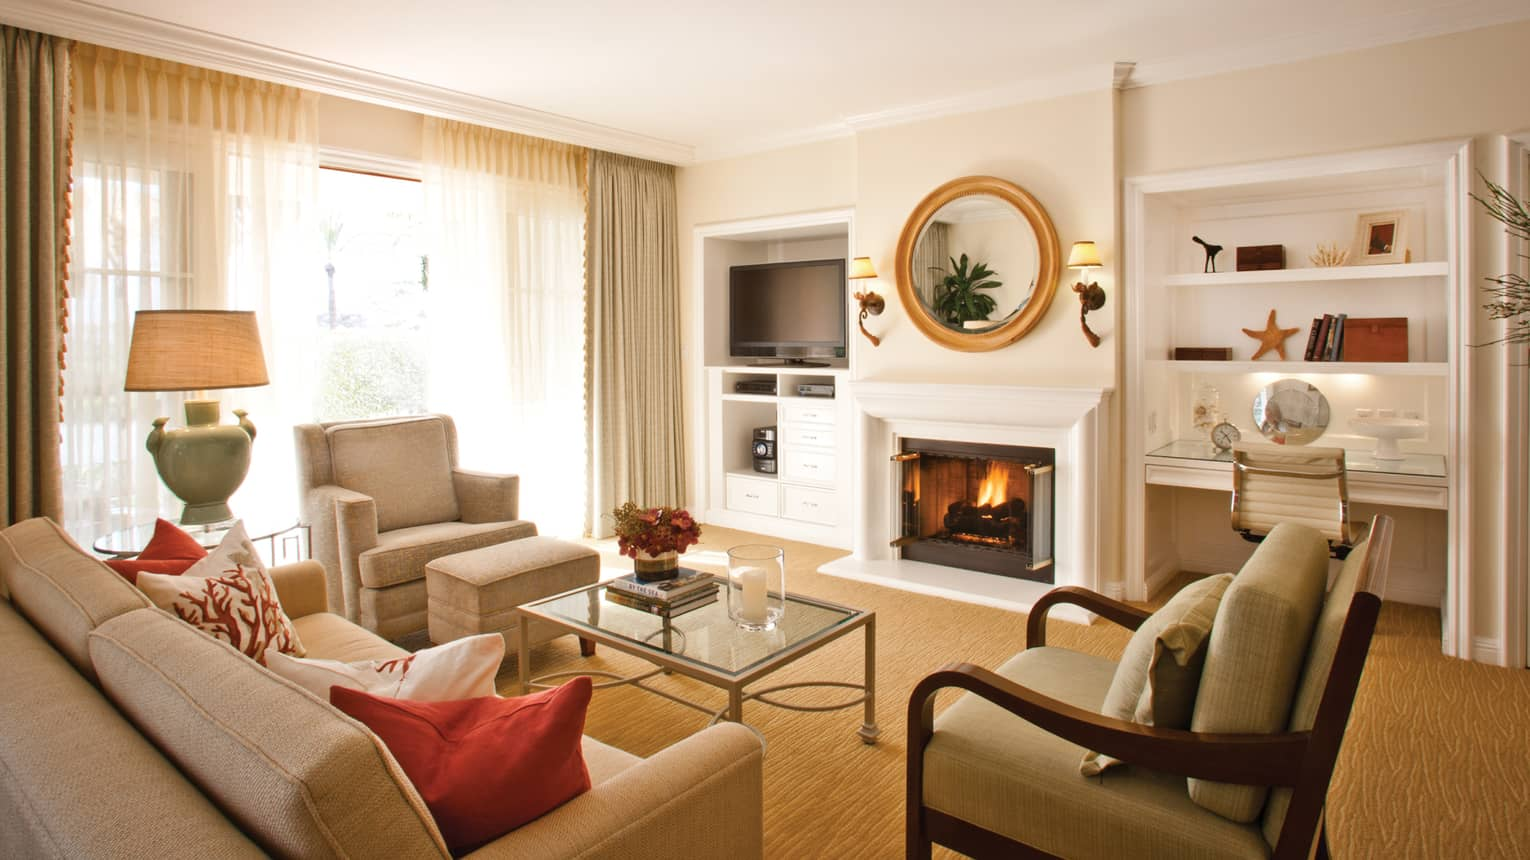 Two-bedroom resort residence living room sofa and armchairs by fireplace with white mantle, mirror, desk